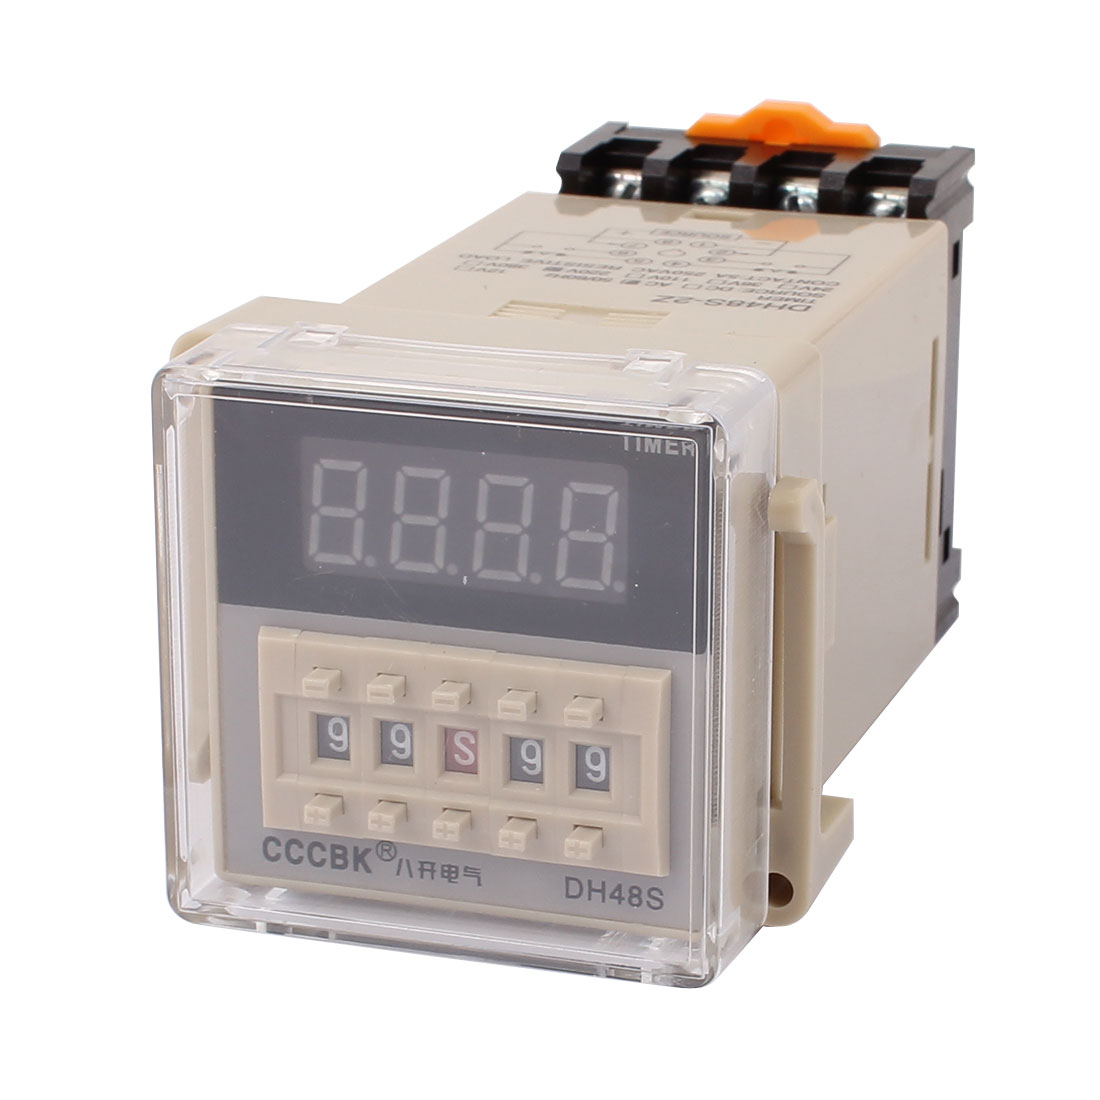 DH48S-2Z AC 220V 0.01s-99H99M Adjustable Timer Control Programe w Base Socket